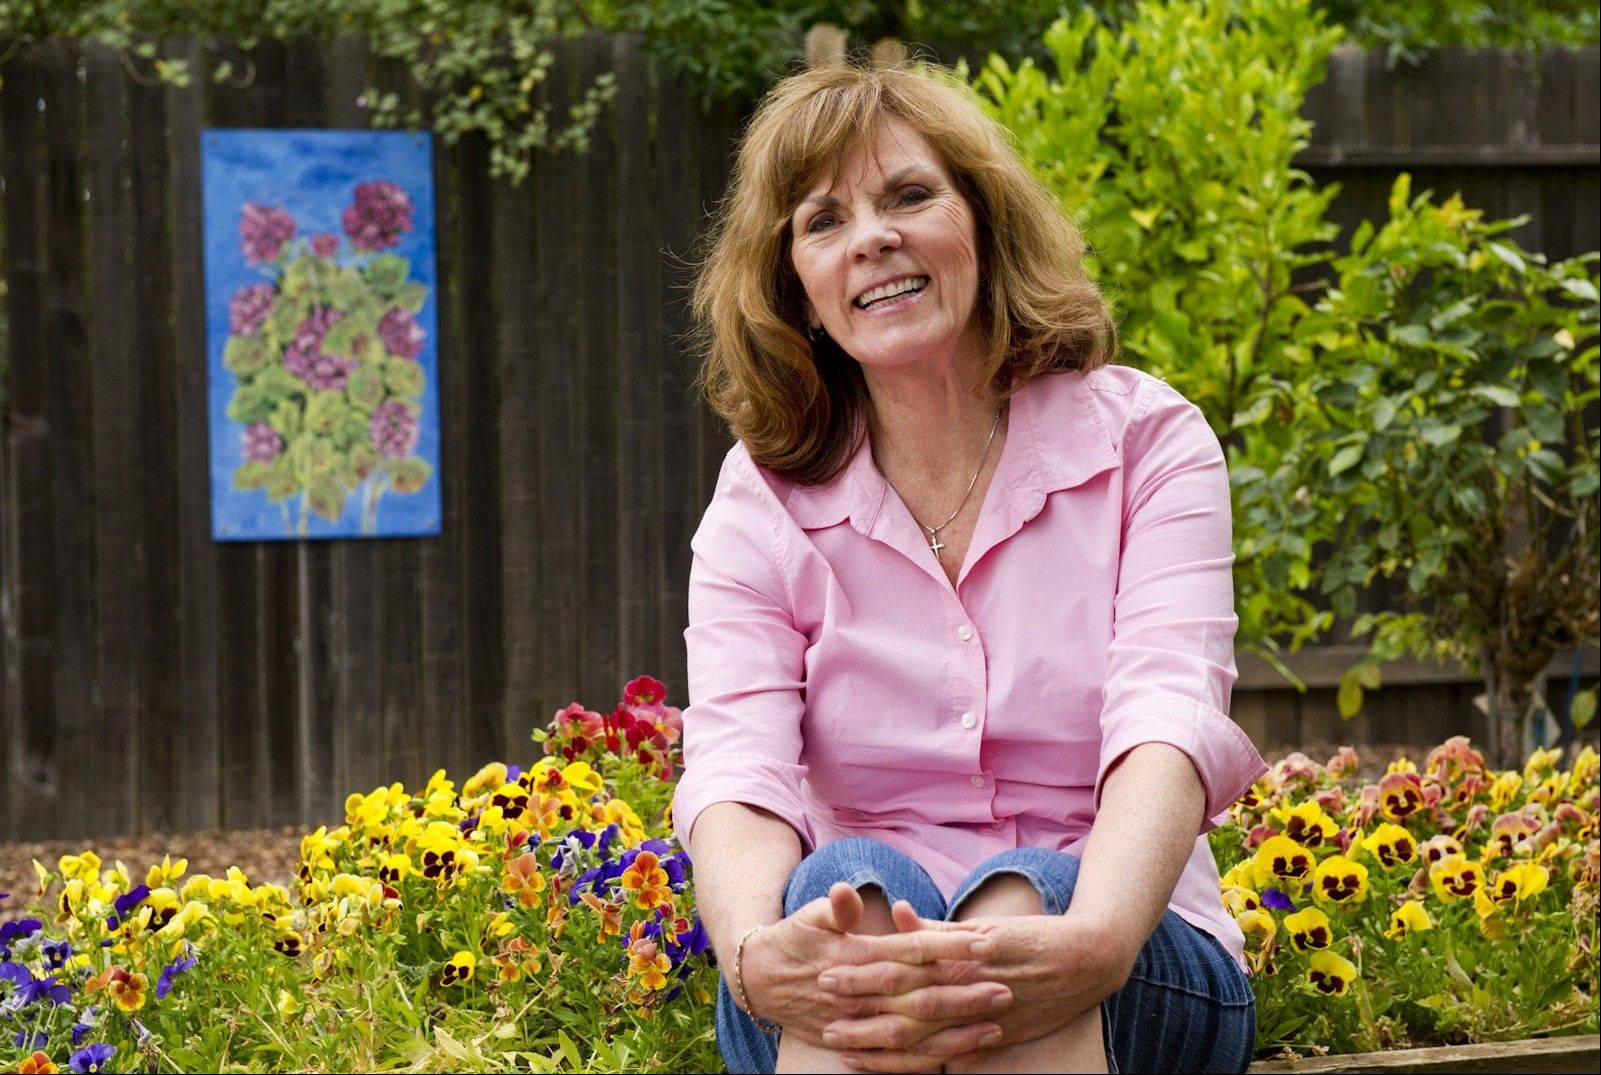 Carolyn Groth's paints colorful, weatherproof garden art that fills a niche as homeowners dress up their outdoor spaces.